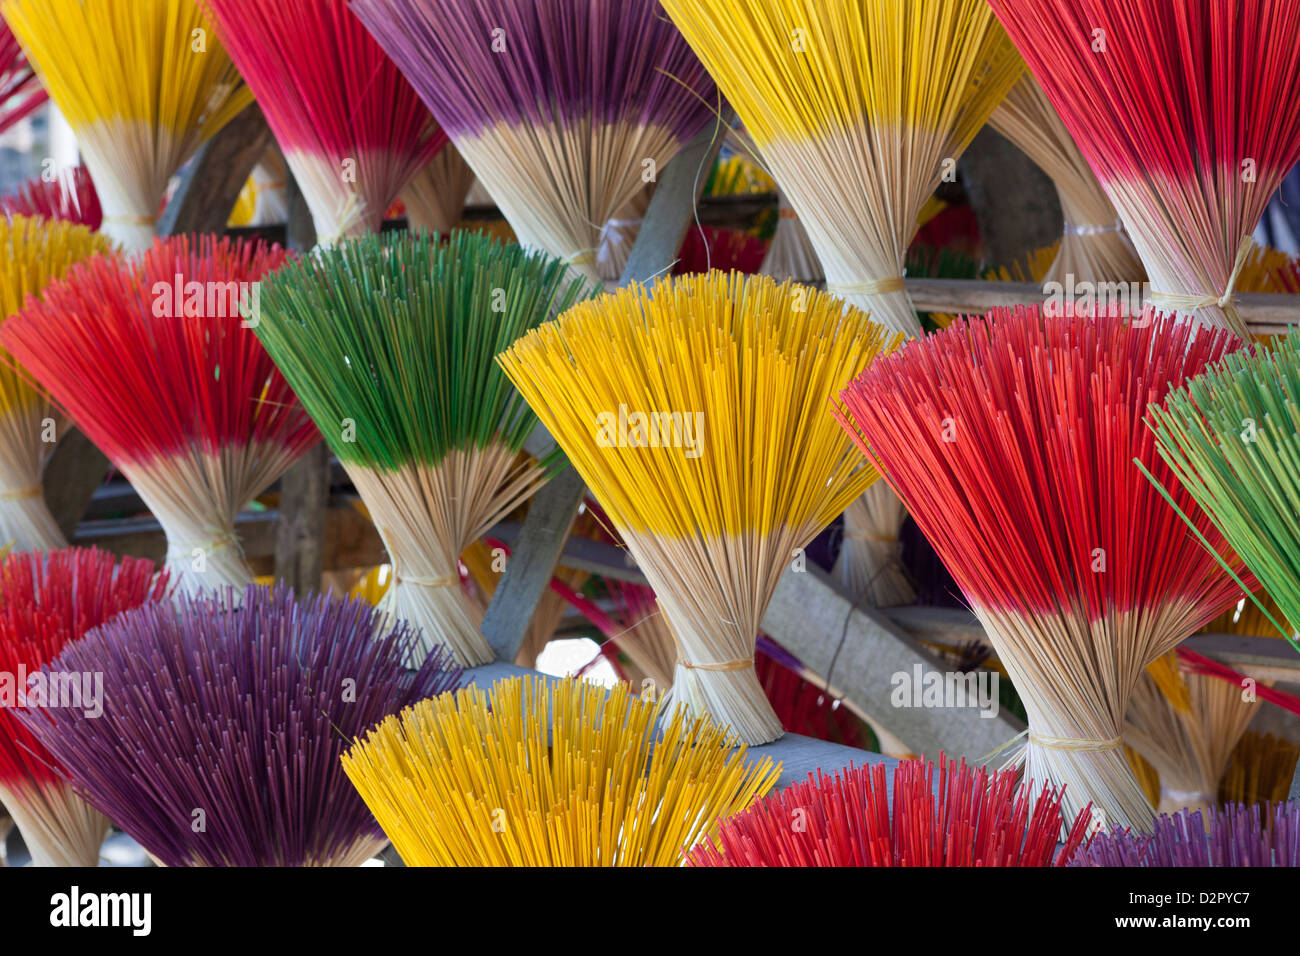 Bundles of incense sticks for sale, made by traditional craftsmen from Thuy Zuan Hat village, Hue, Vietnam, Indochina - Stock Image